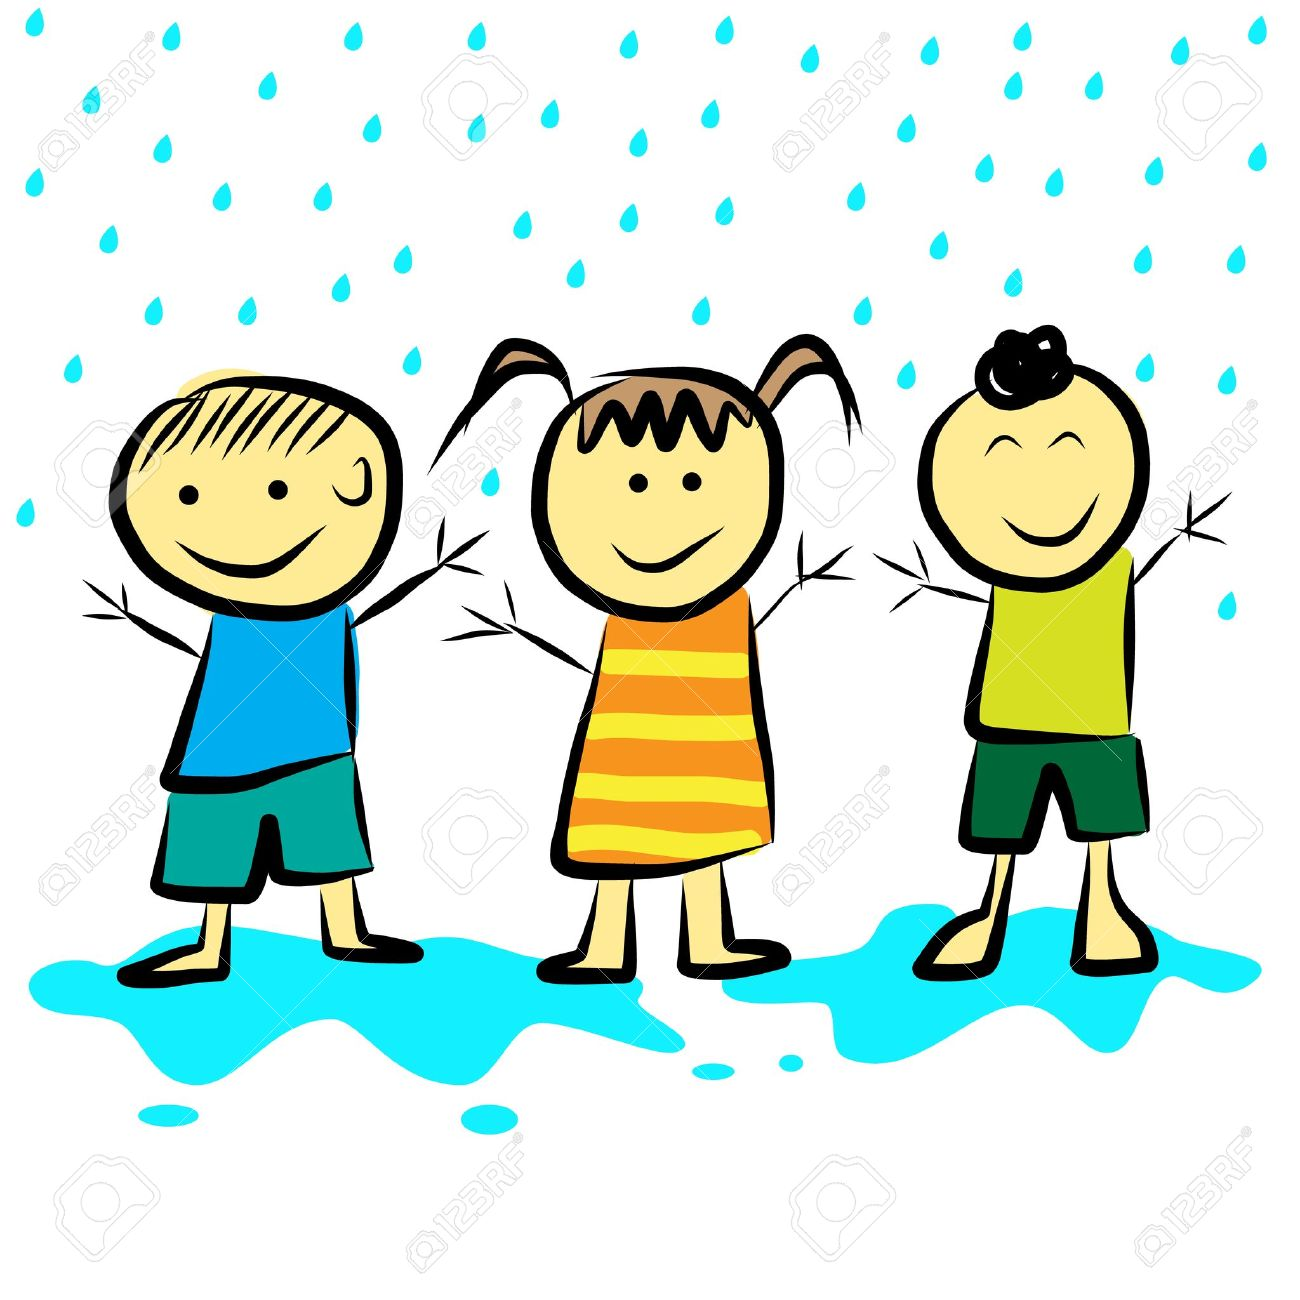 kids playing in the rain format royalty free cliparts vectors and rh 123rf com Couple Dancing Clip Art Group Dancing Clip Art